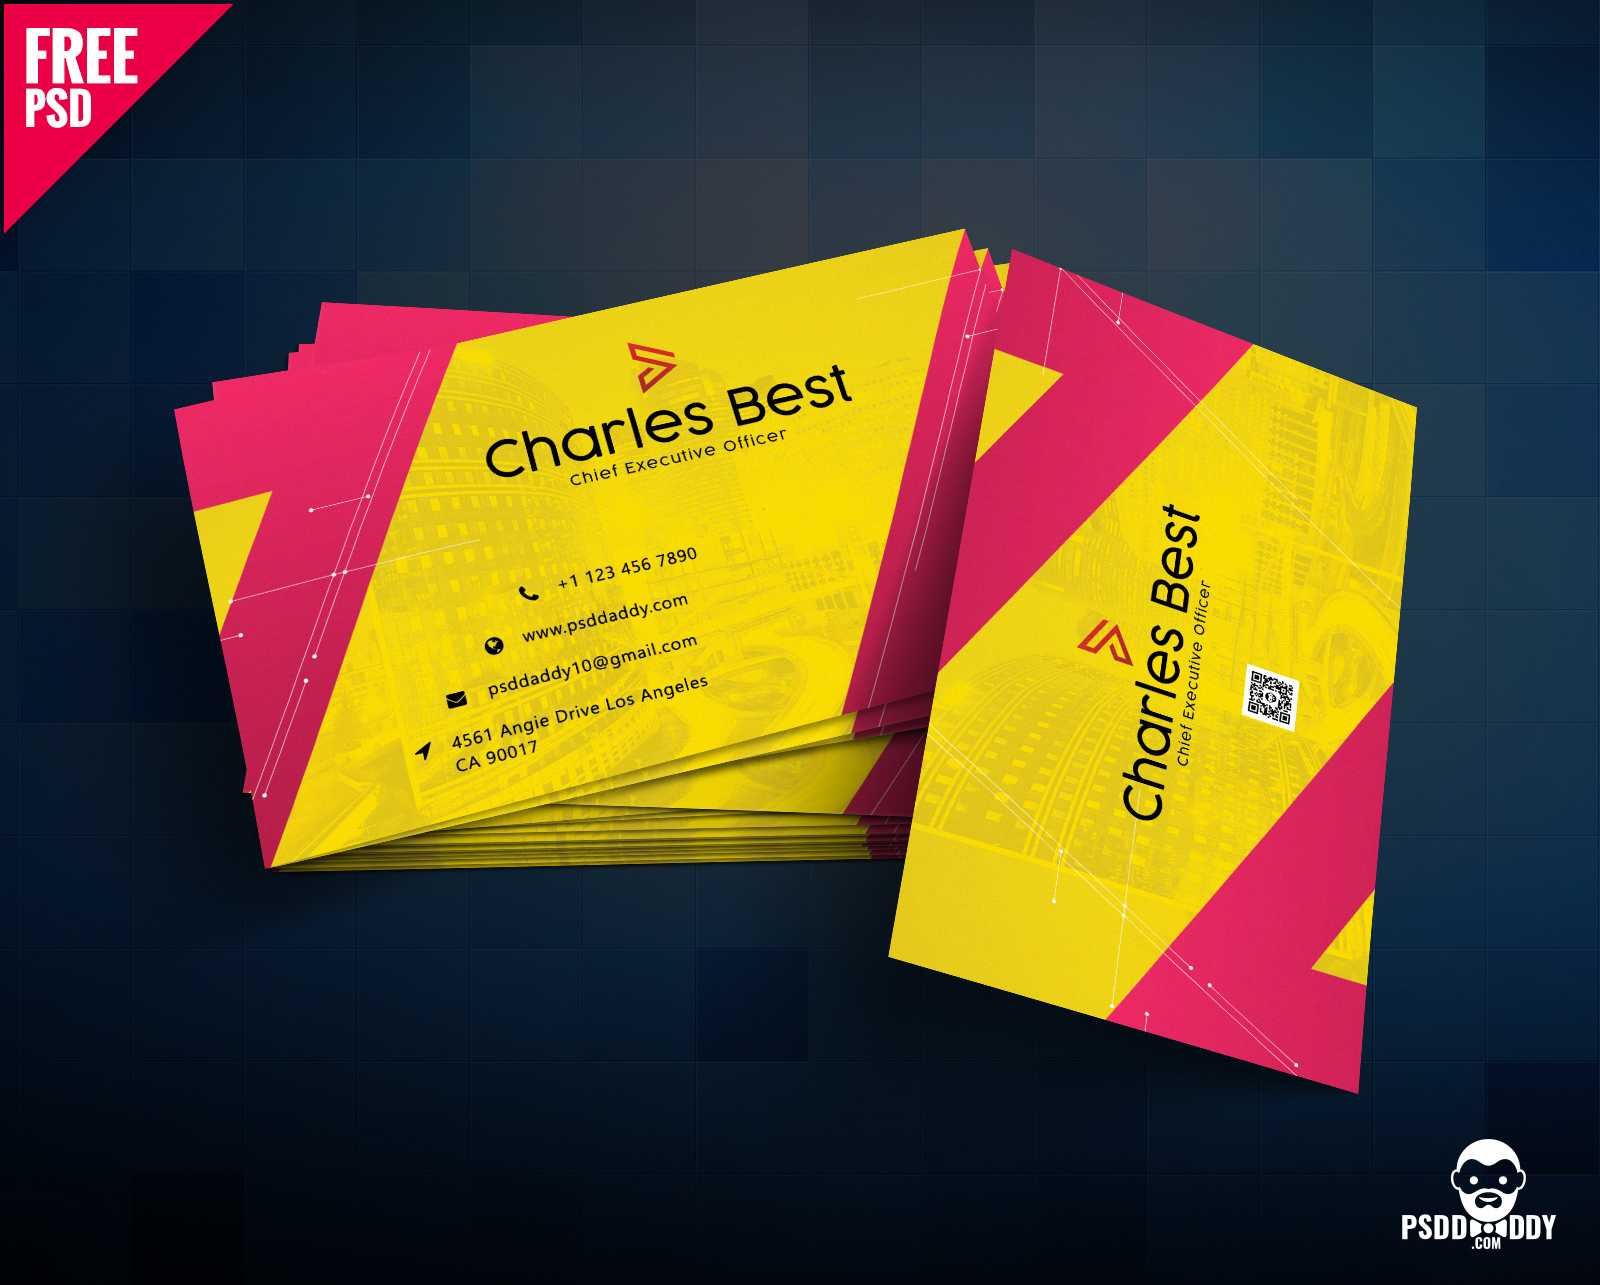 Download] Creative Business Card Free Psd | Psddaddy Within Creative Business Card Templates Psd